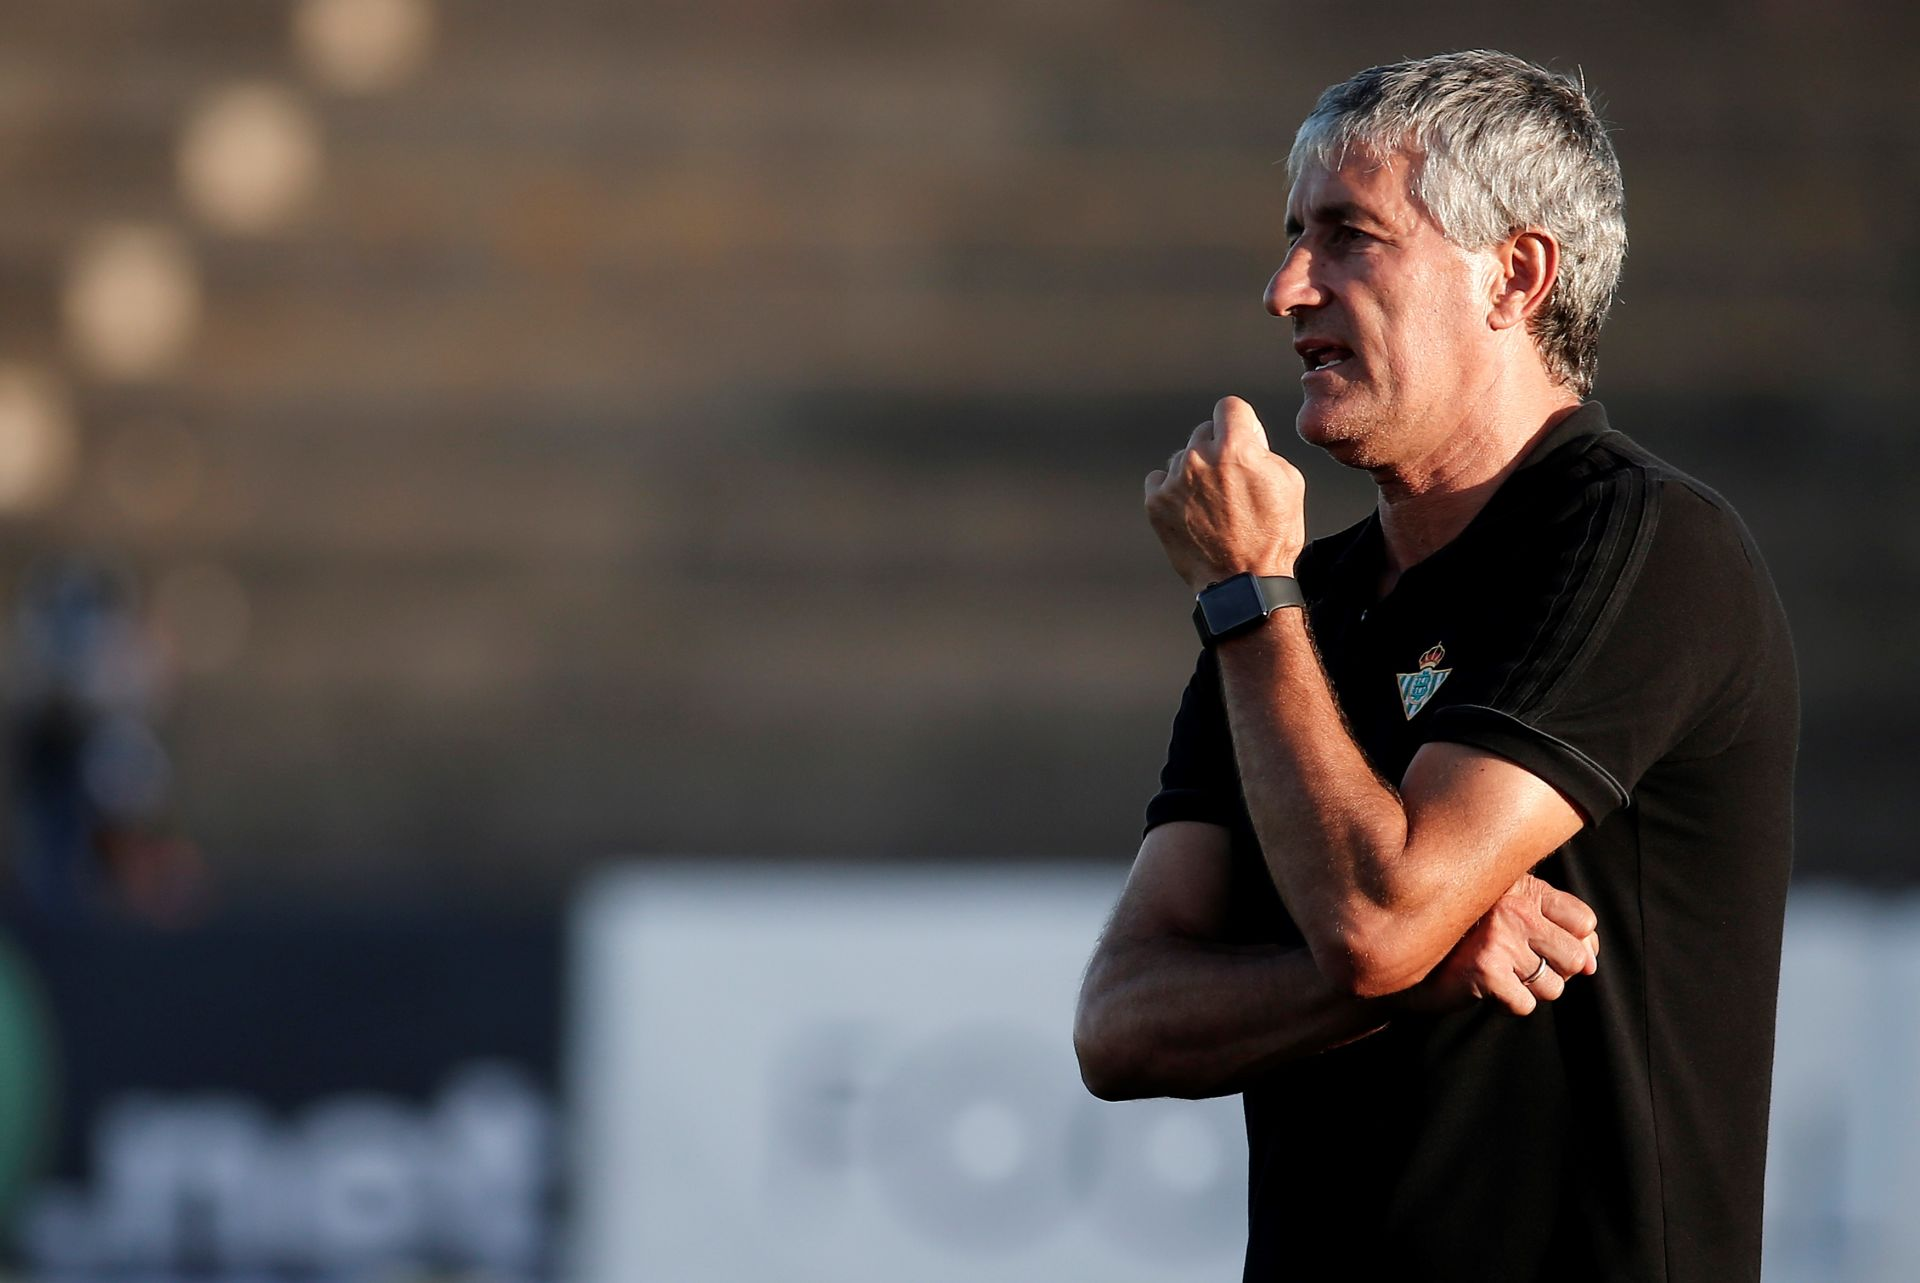 CADIZ, SPAIN - JULY 30 : Head coach of Real Betis Quique Setien is seen during a friendly match between Besiktas and Real Betis as part of the new season preparations in Cadiz, Spain on July 30, 2017. Burak Akbulut / Anadolu Agency FOT.ABACA/NEWSPIX.PL POLAND ONLY!!! --- Newspix.pl mecz towarzysKLI PILKA NOZNA *** Local Caption *** www.newspix.pl mail us: info@newspix.pl call us: 0048 022 23 22 222 --- Polish Picture Agency by Ringier Axel Springer Poland